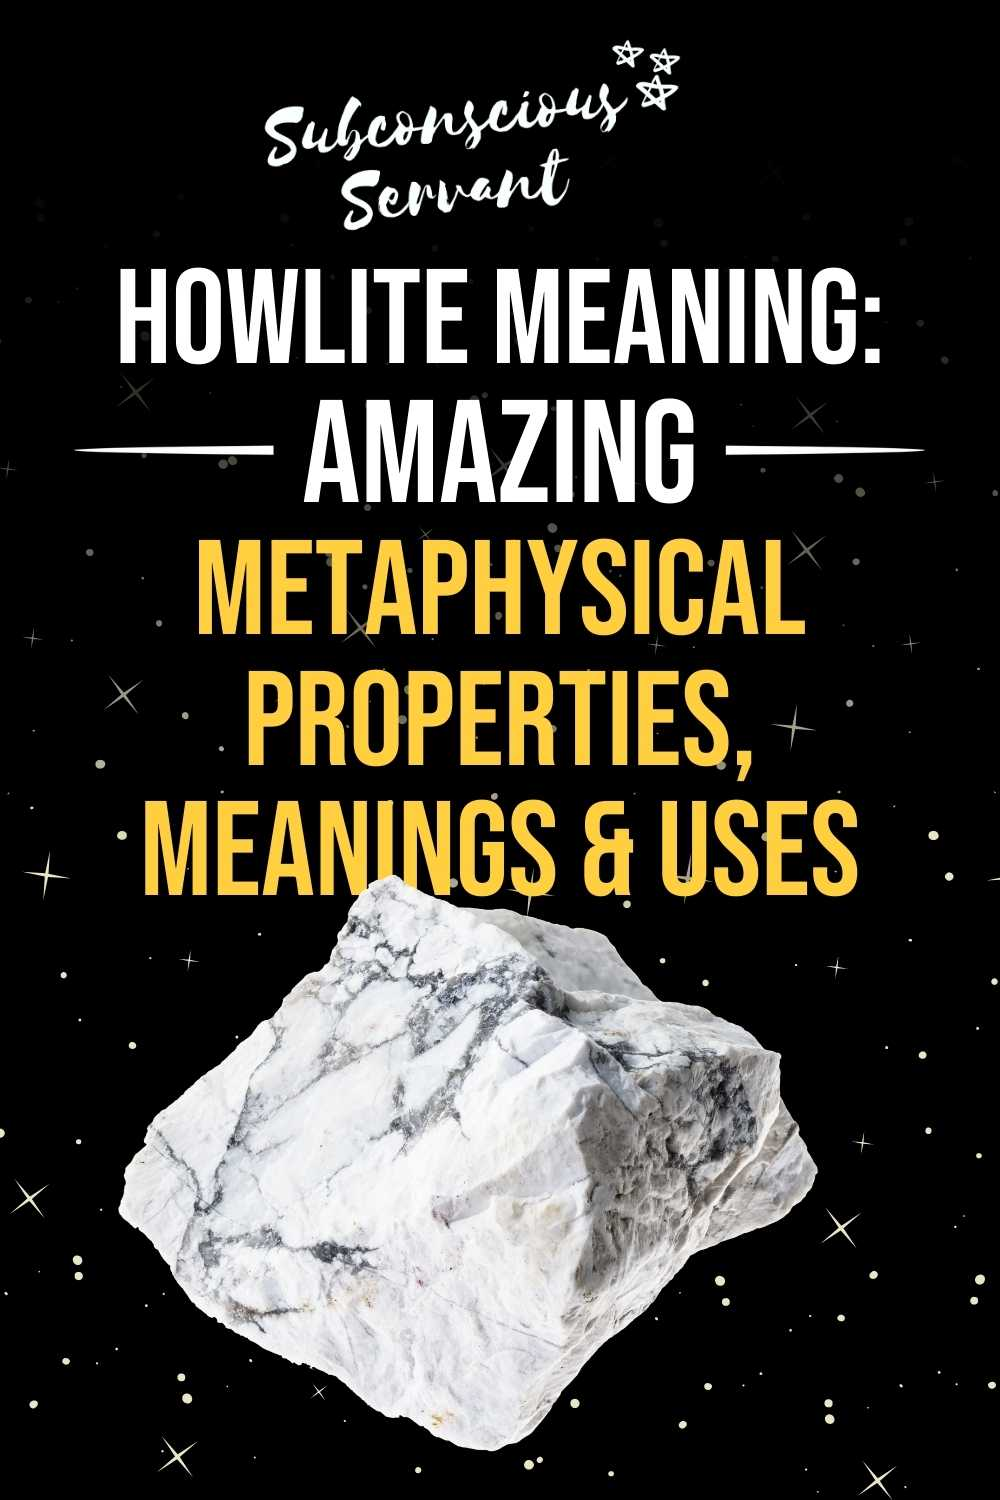 Howlite Meaning: Amazing Metaphysical Properties, Meanings & Uses